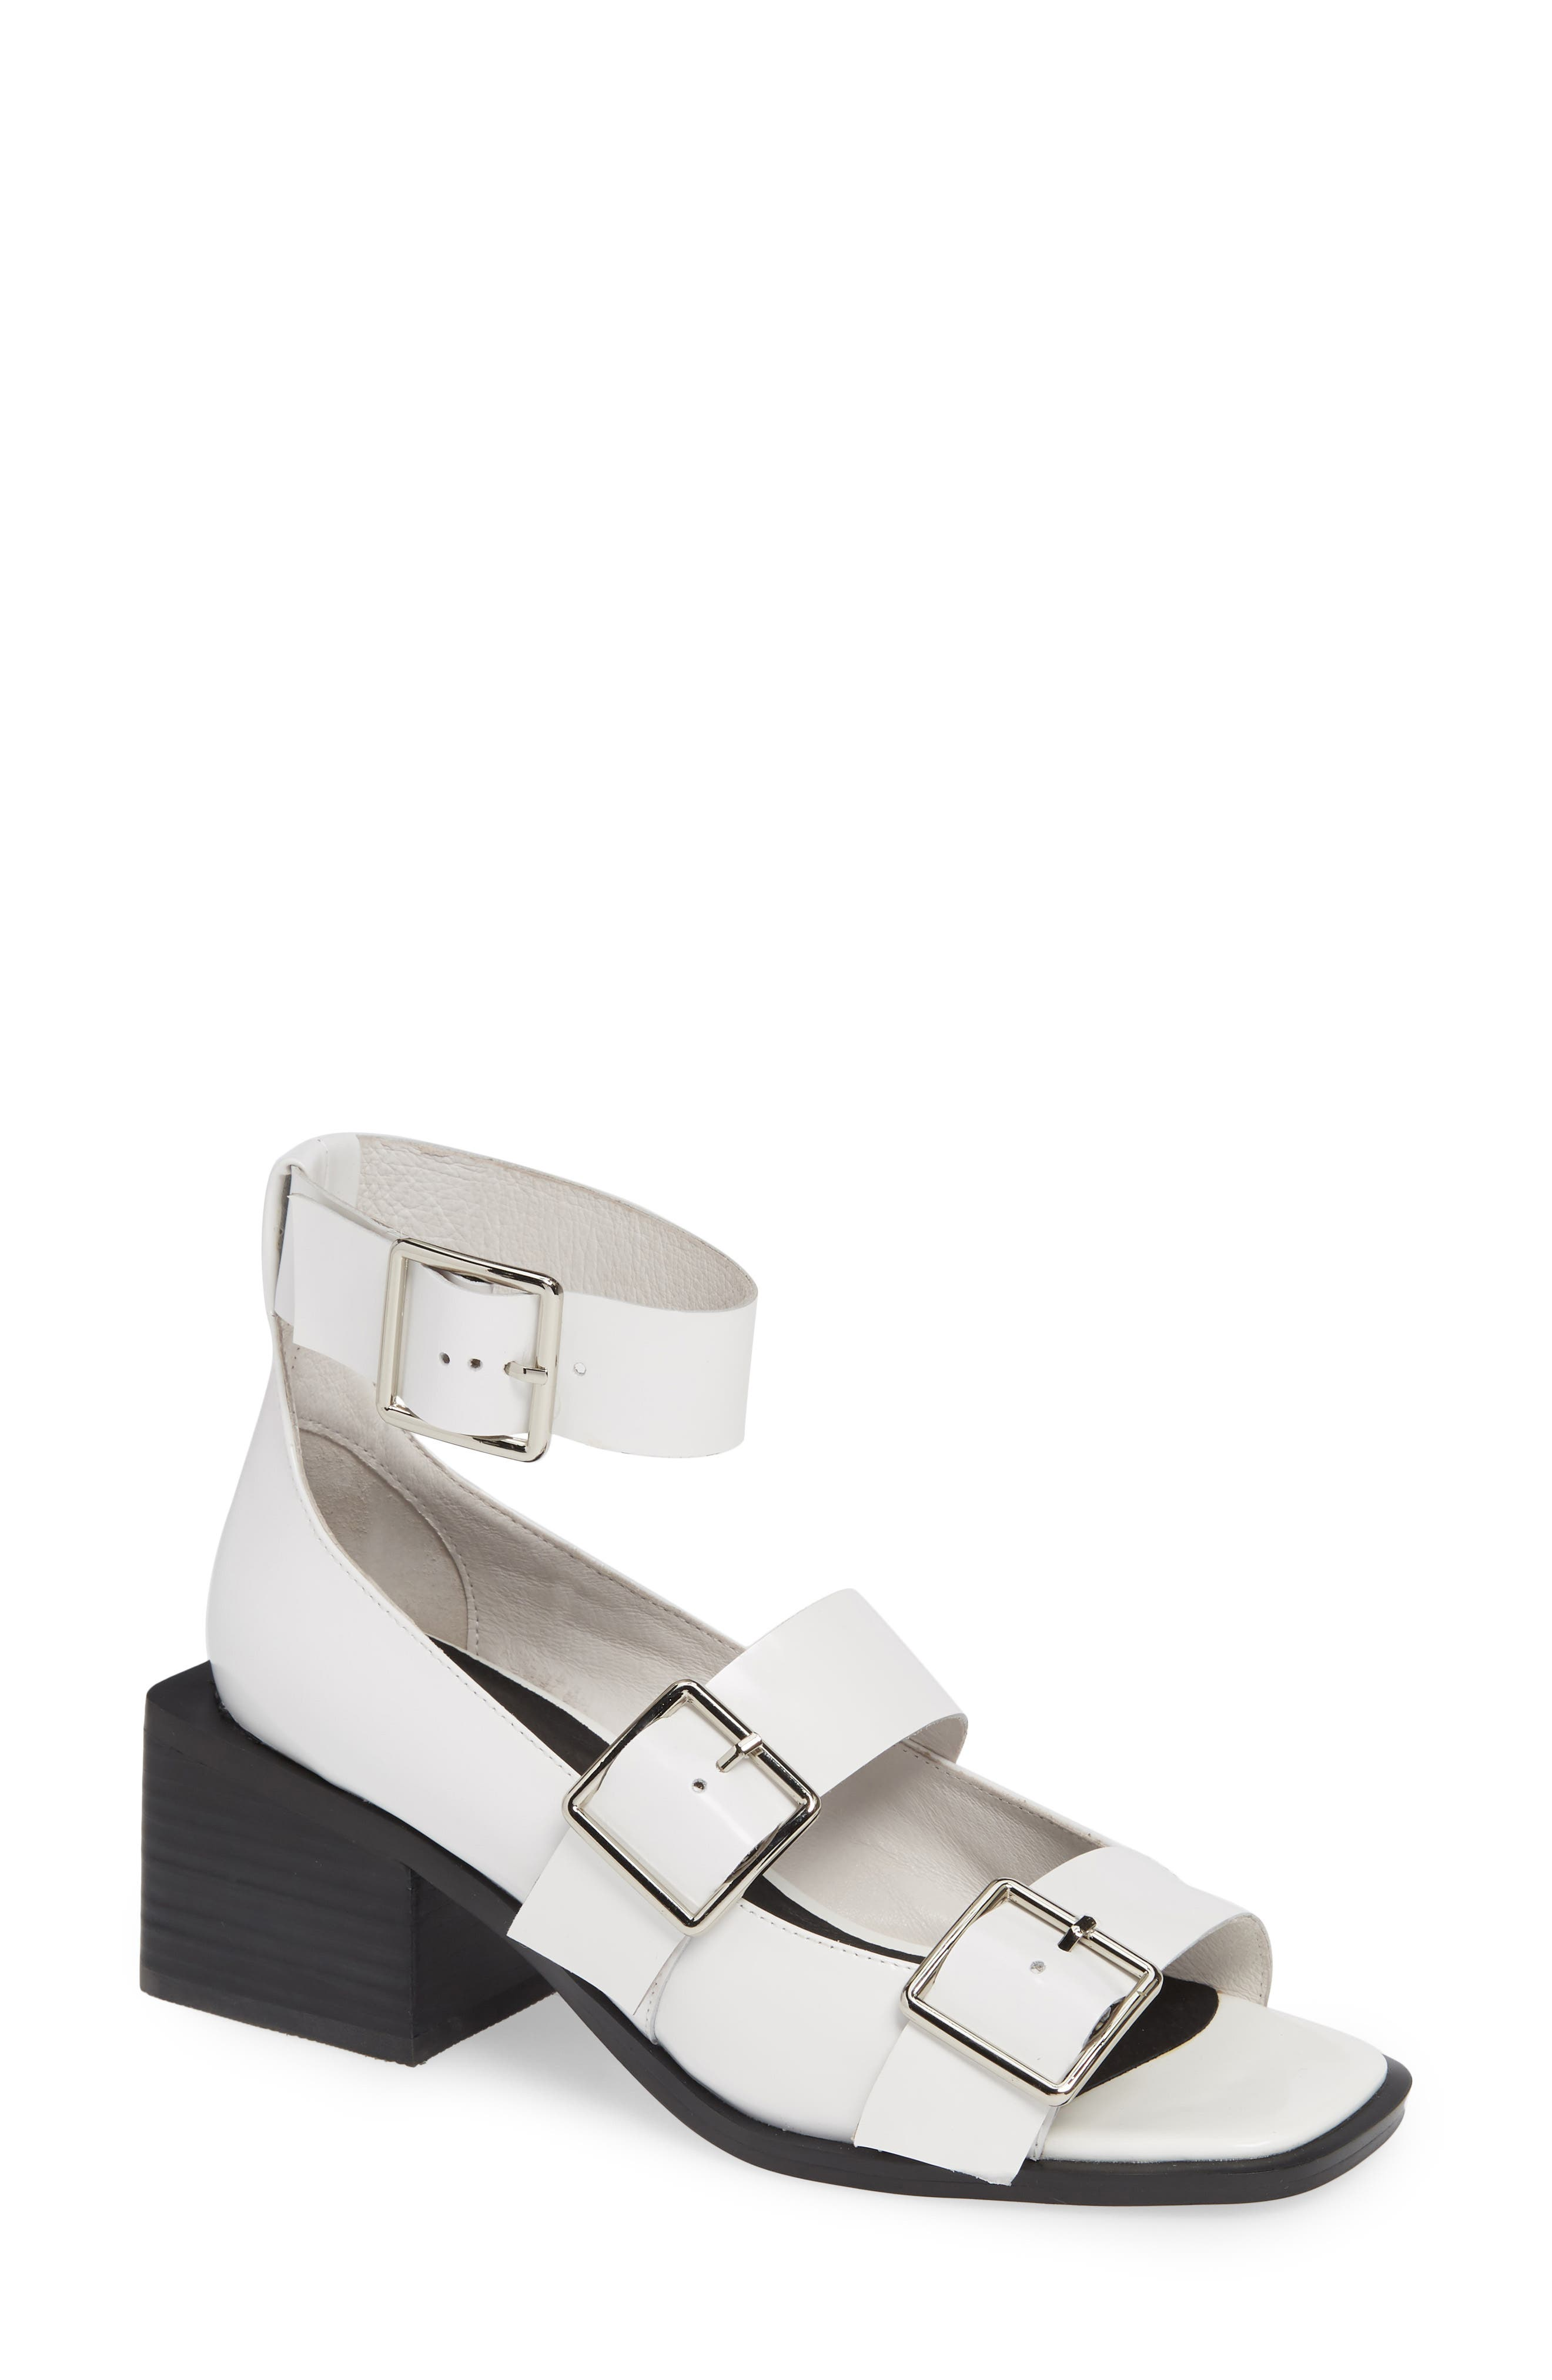 Jeffrey Campbell Aspinal Ankle Strap Sandal, White